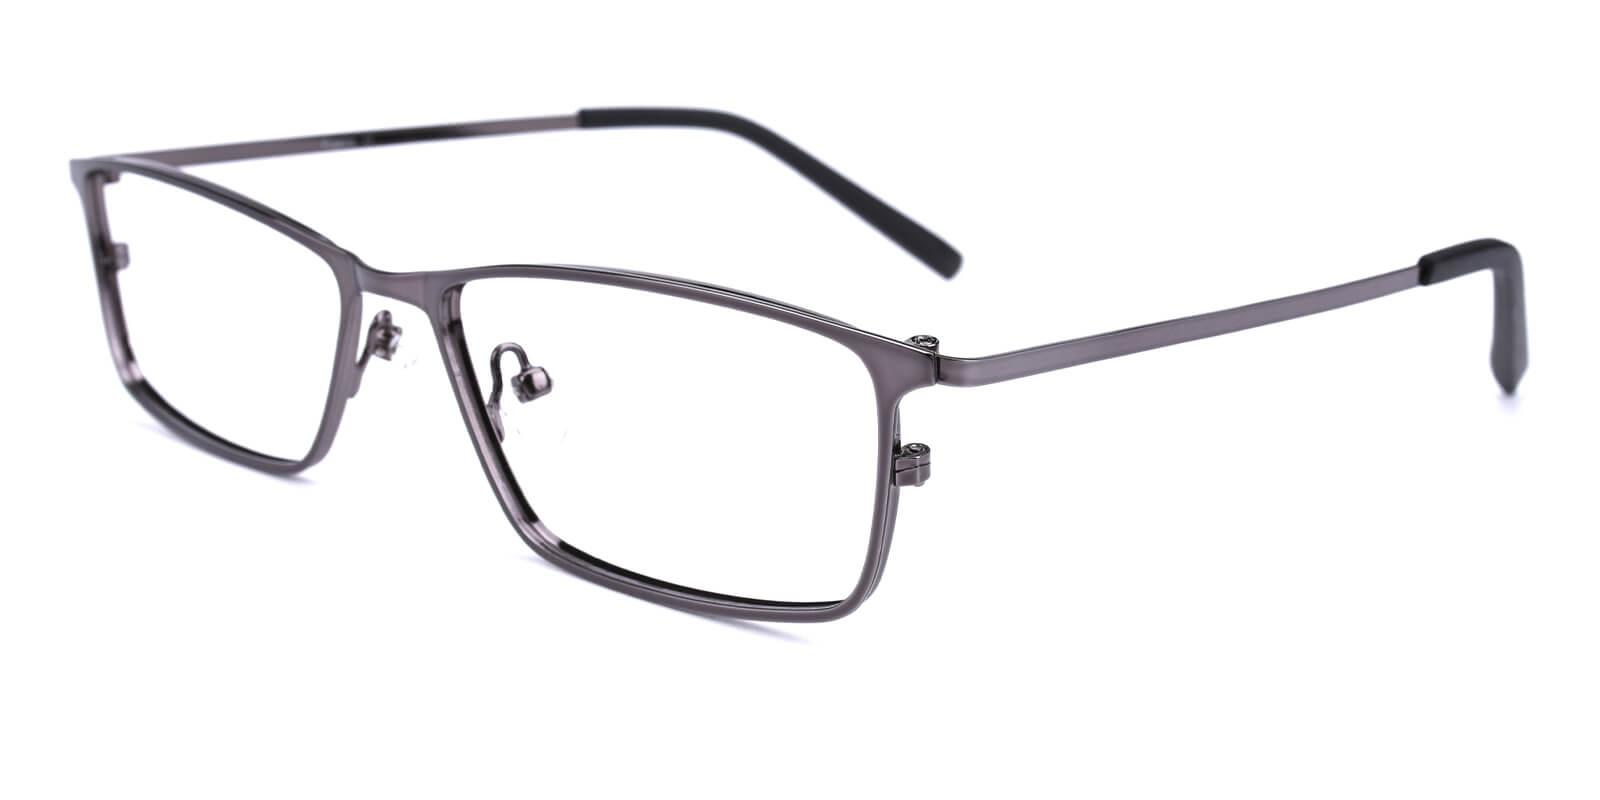 Wildfire-Gun-Rectangle-Metal-Eyeglasses-additional1